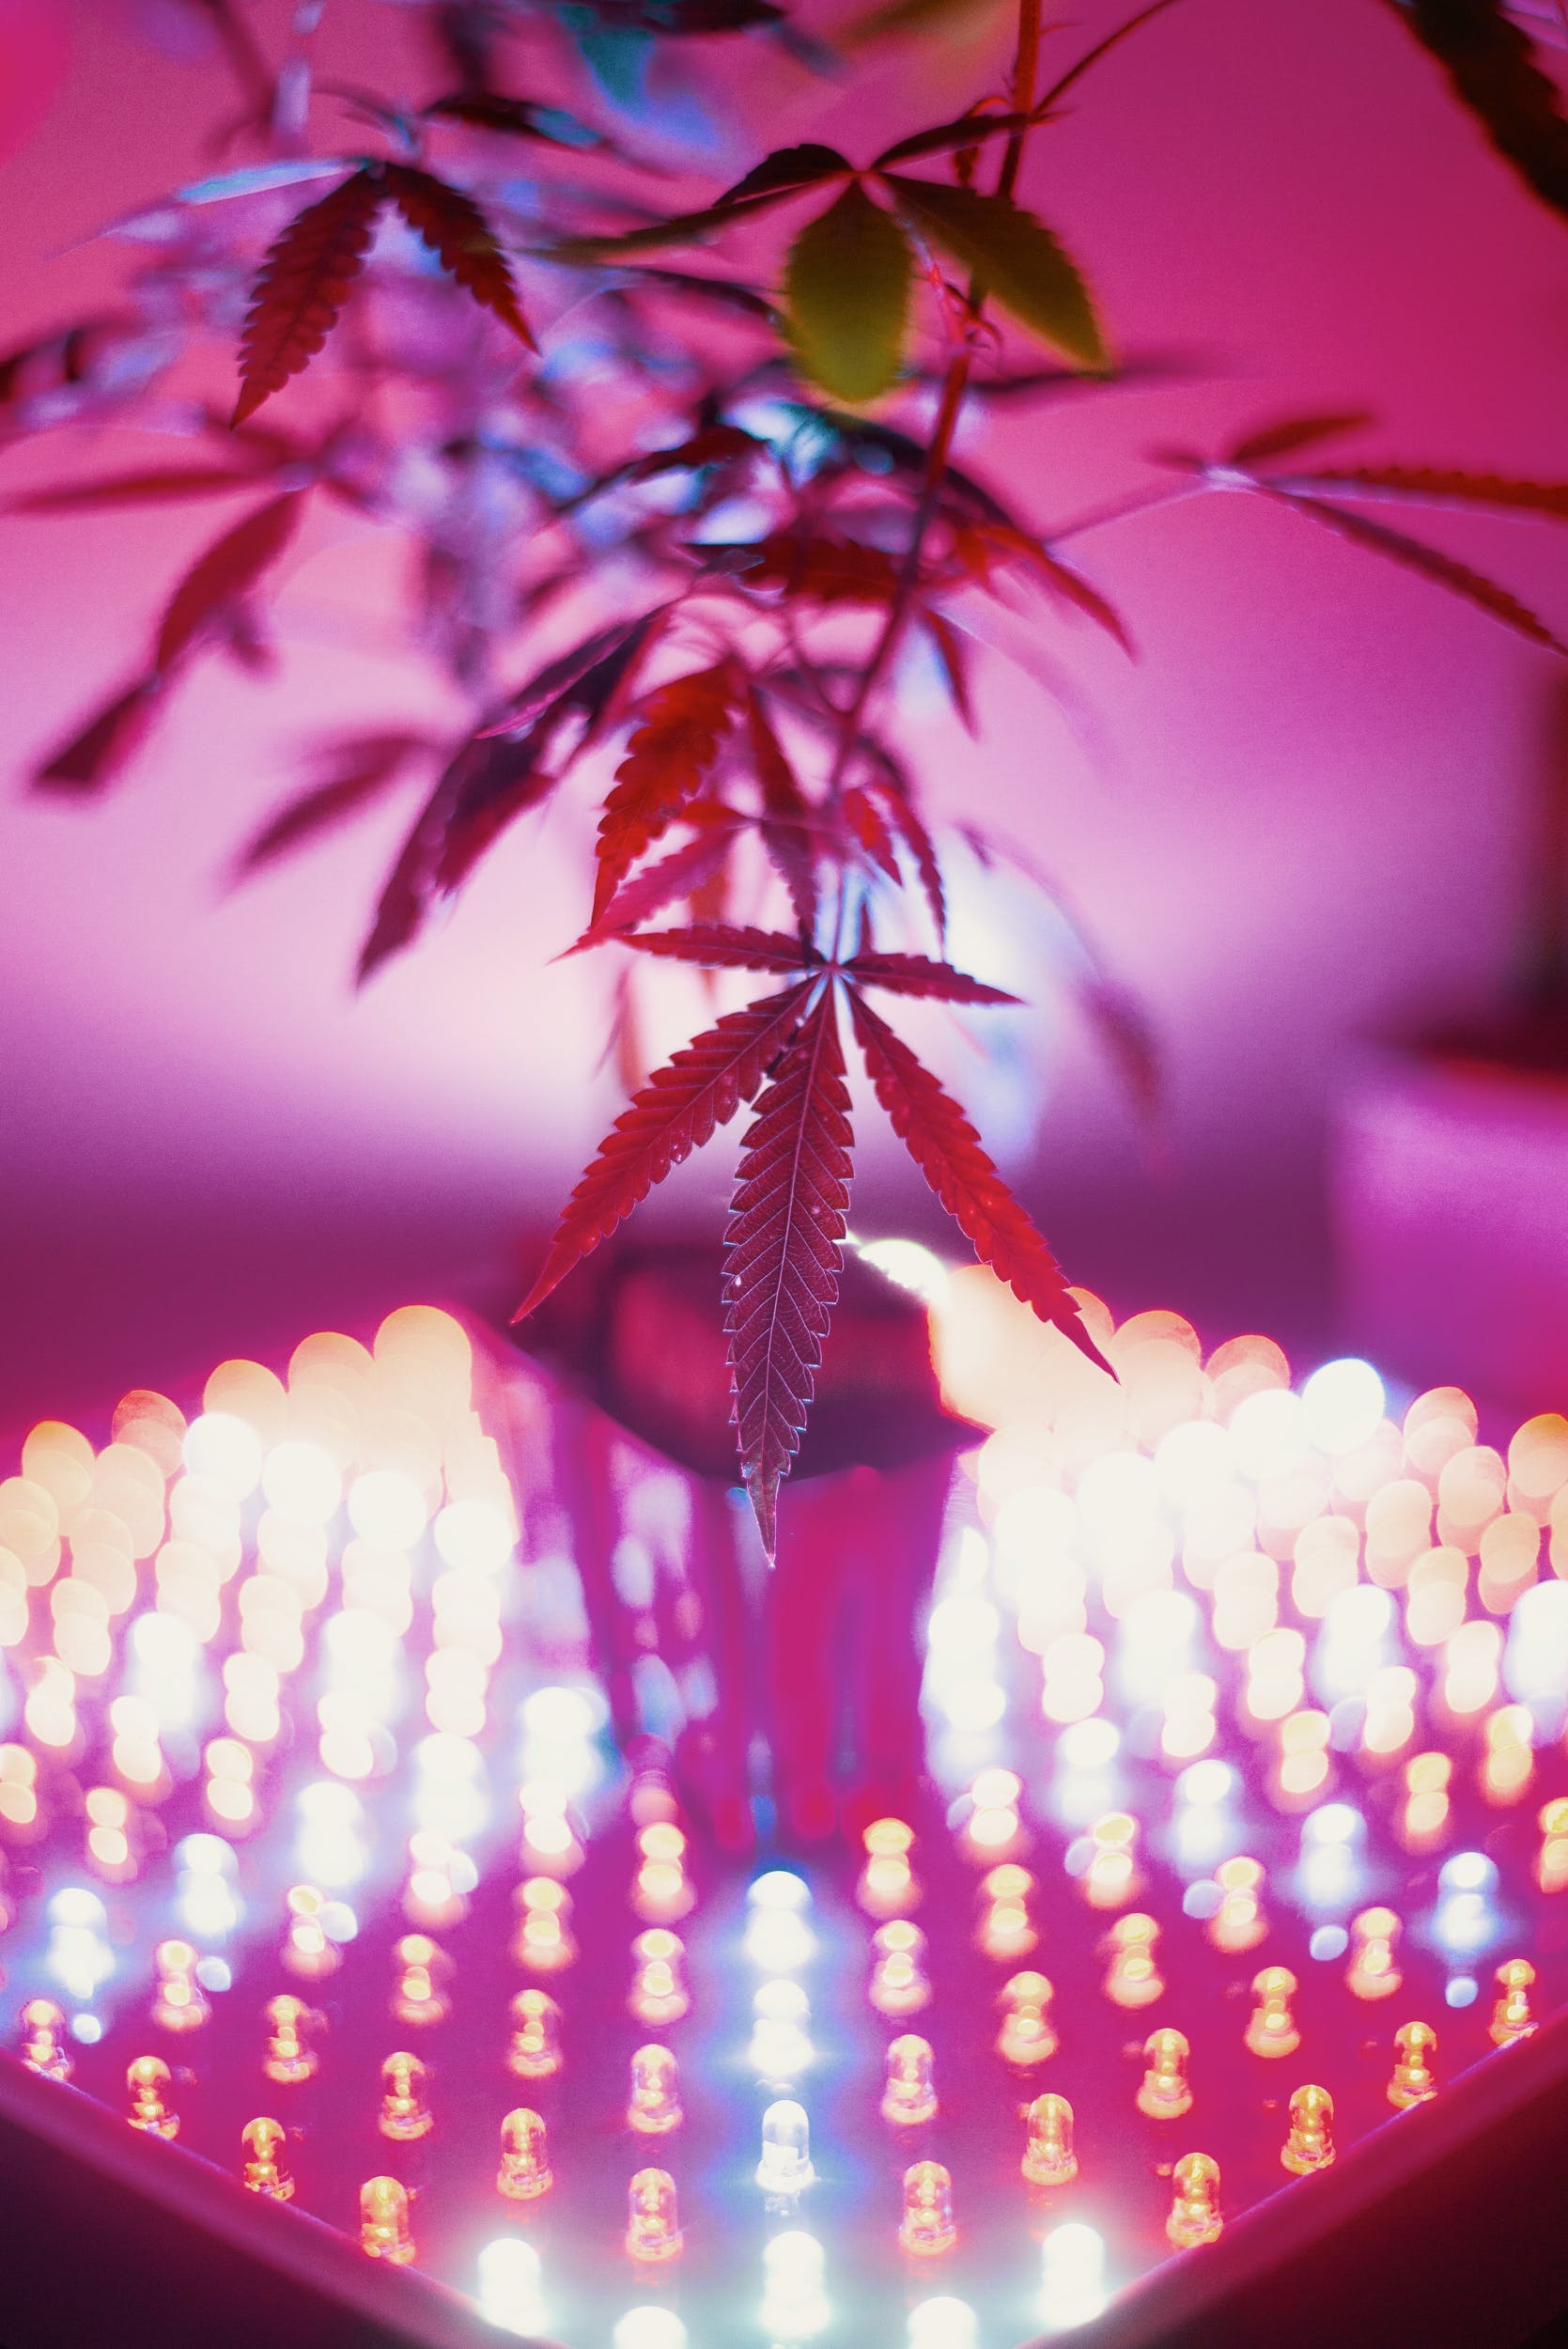 Best LED Grow Lights 8 These Are The Best LED Grow Lights For Big Yields and Healthy Plants